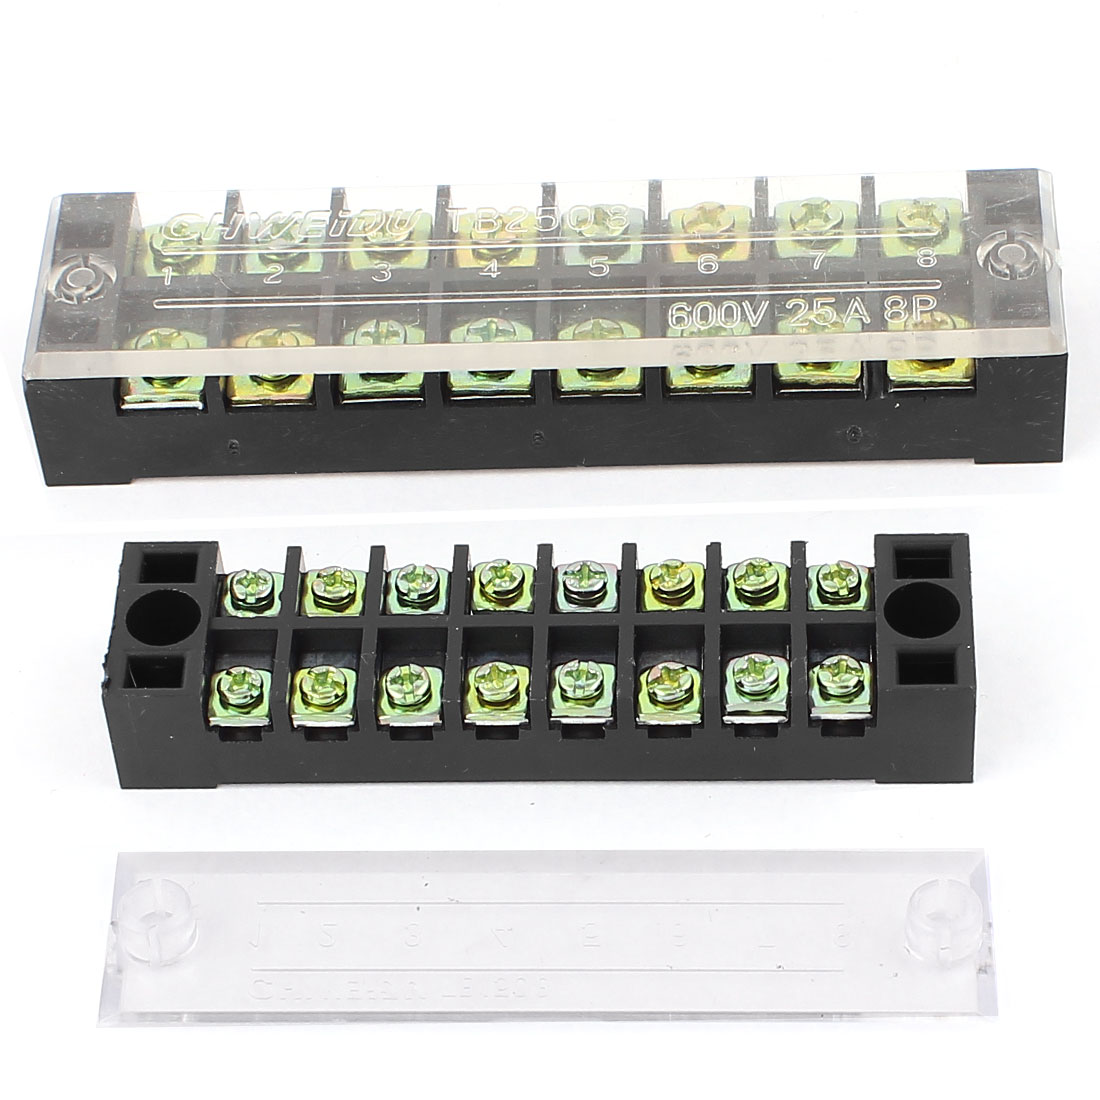 2Pcs 600V 15A/25A Dual Row 8 Positions Screw Electric Wire Connection Barrier Terminal Strip Block Set